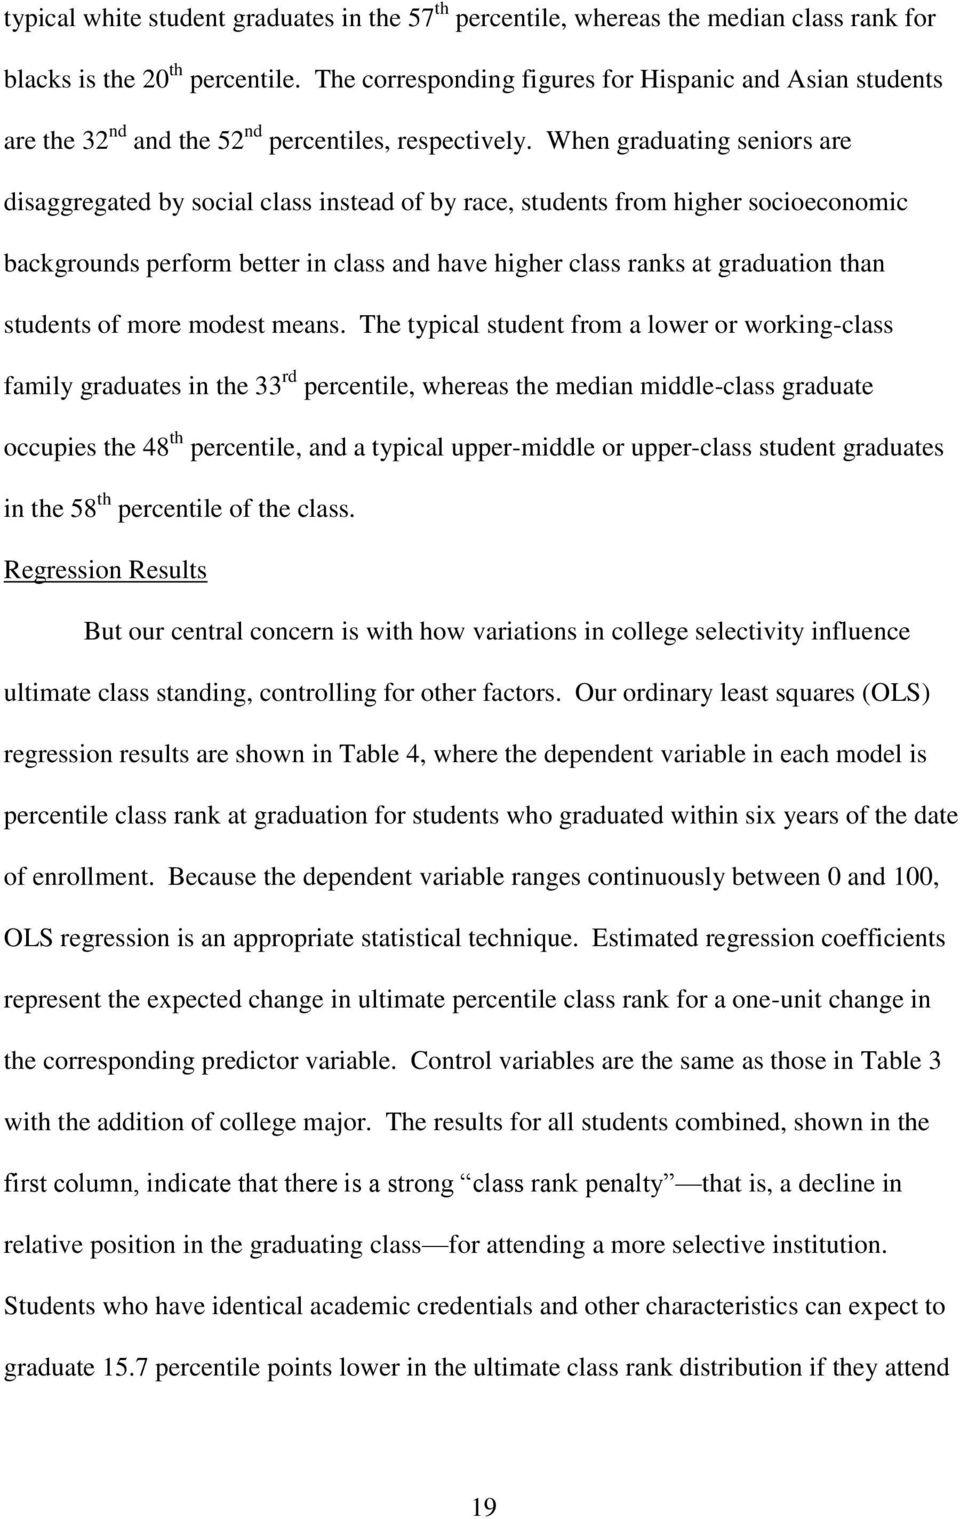 When graduating seniors are disaggregated by social class instead of by race, students from higher socioeconomic backgrounds perform better in class and have higher class ranks at graduation than